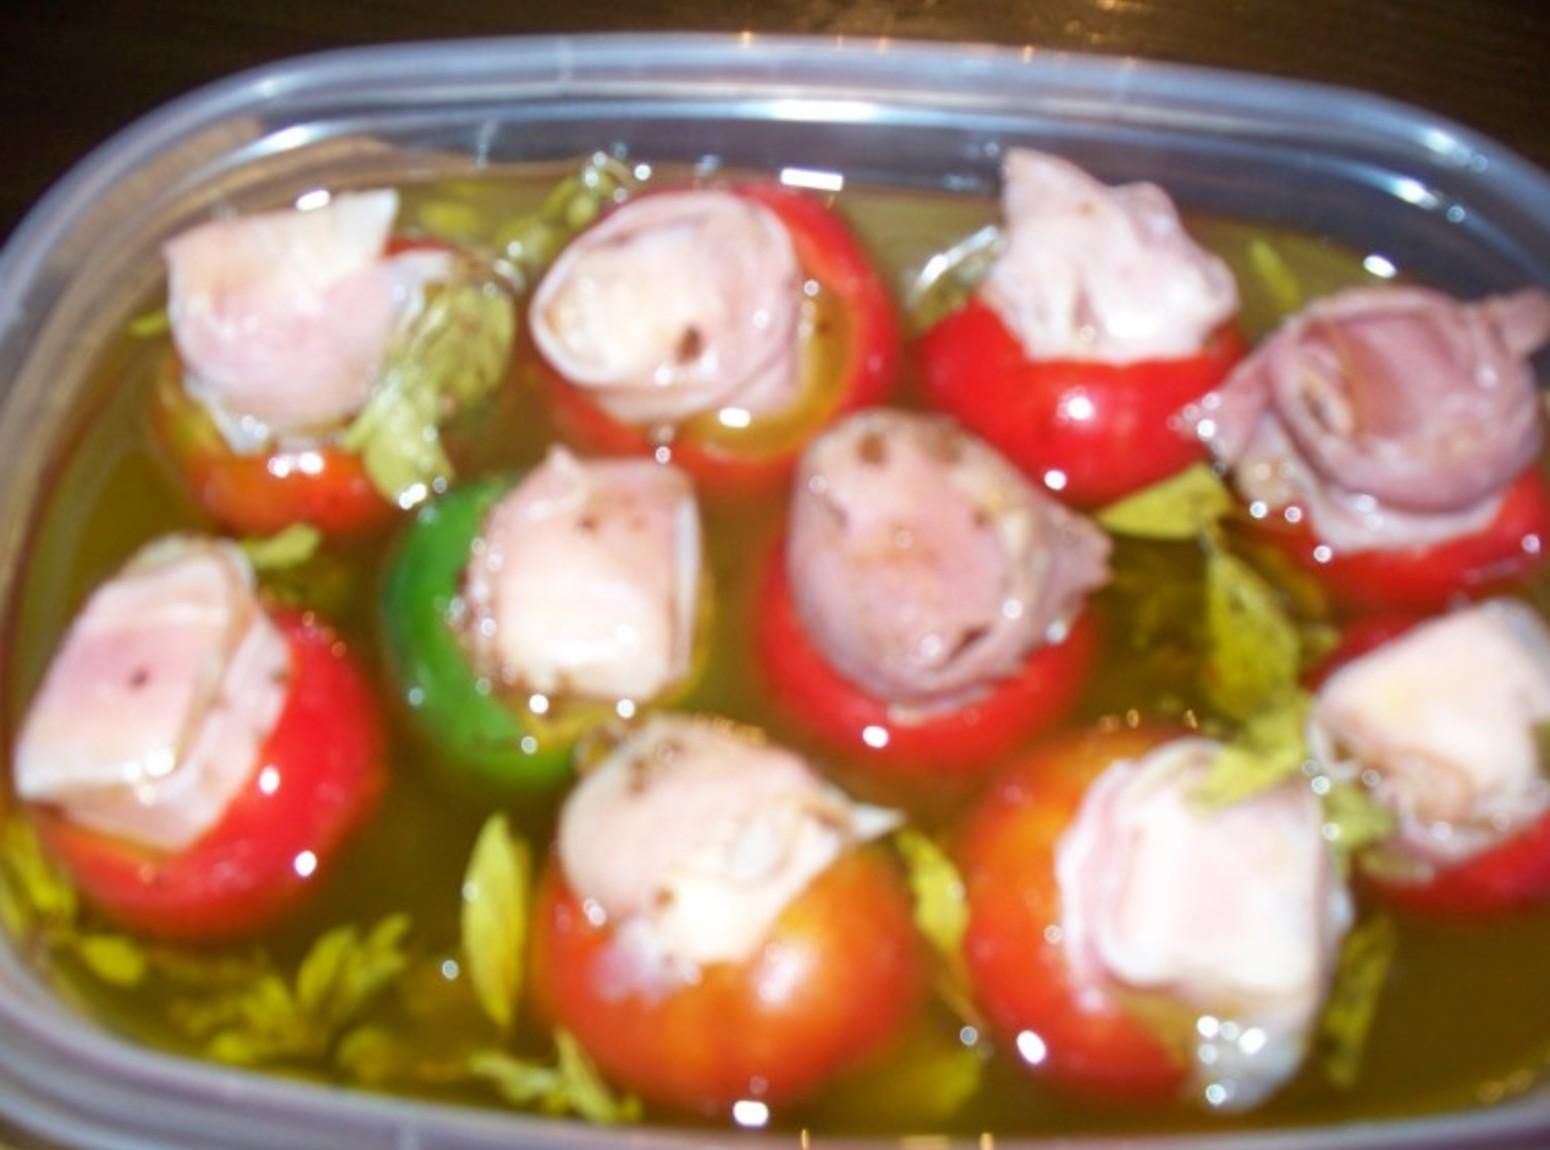 Pickeled Stuffed Cherry Hot Peppers Recipe Stuffed Hot Peppers Hot Pepper Recipes Cherry Pepper Recipes